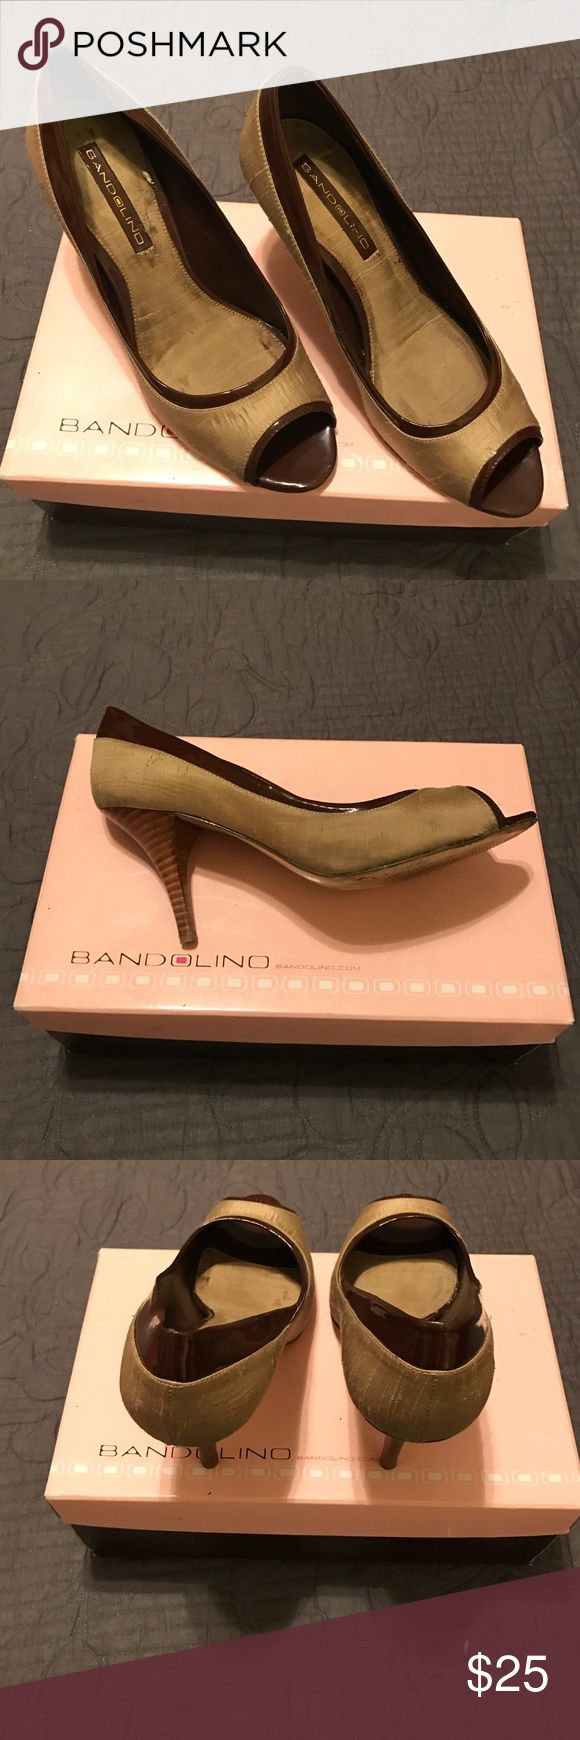 Brown and gold peep toe pumps Metallic gold and patent leather trim brown peep toe pumps by Bandolino Bandolino Shoes Heels